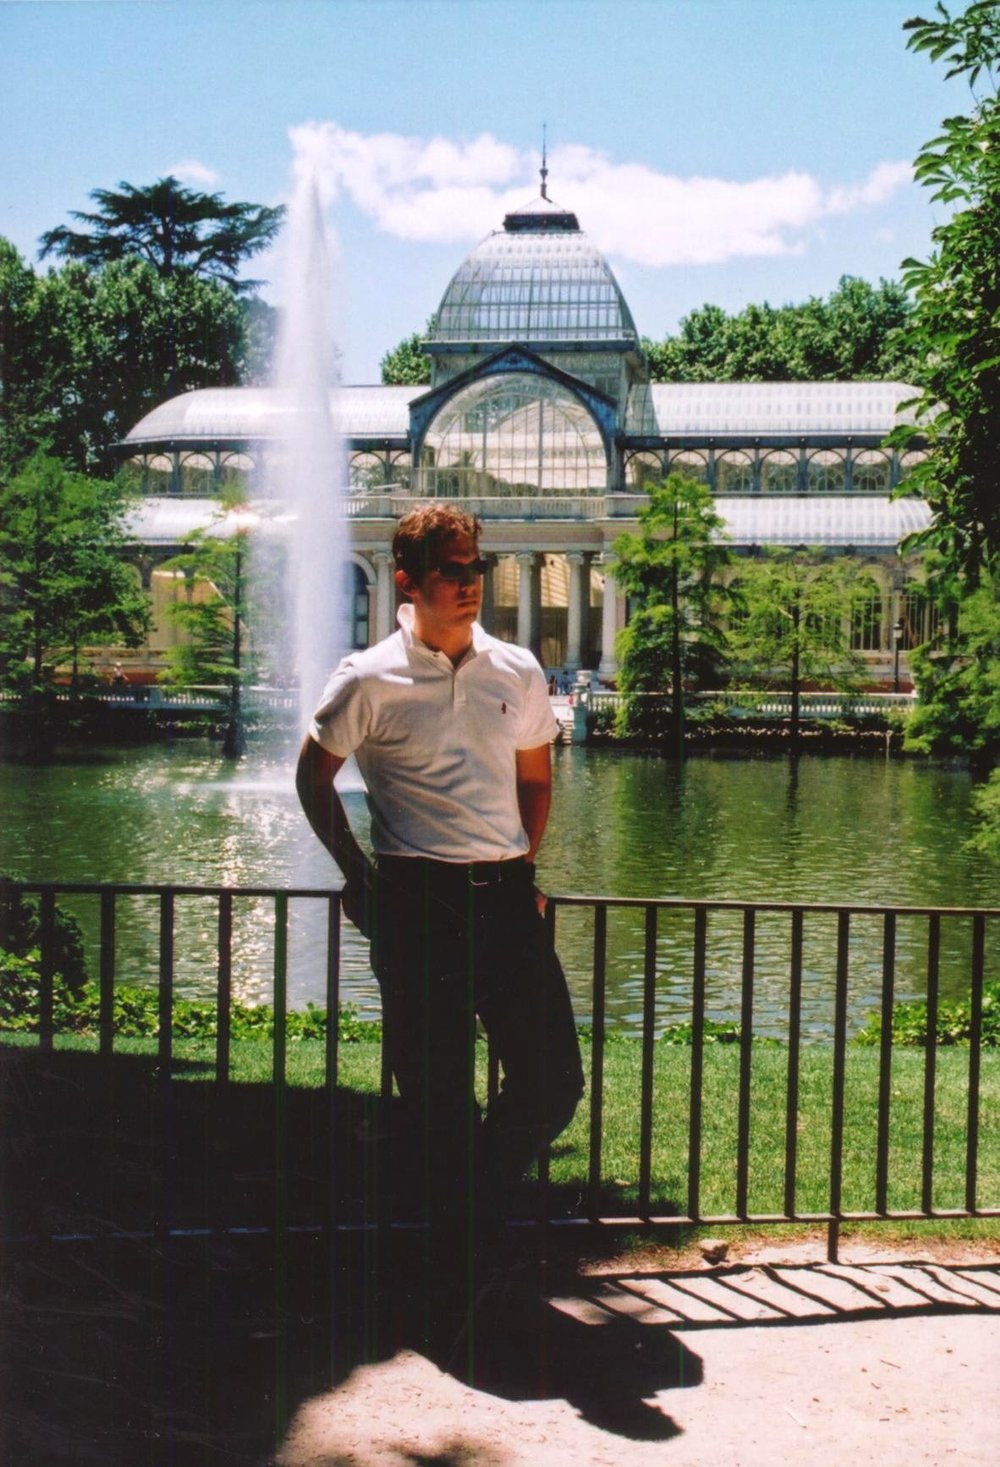 May 2002 – Parque del Retiro. Photo taken by my mom.